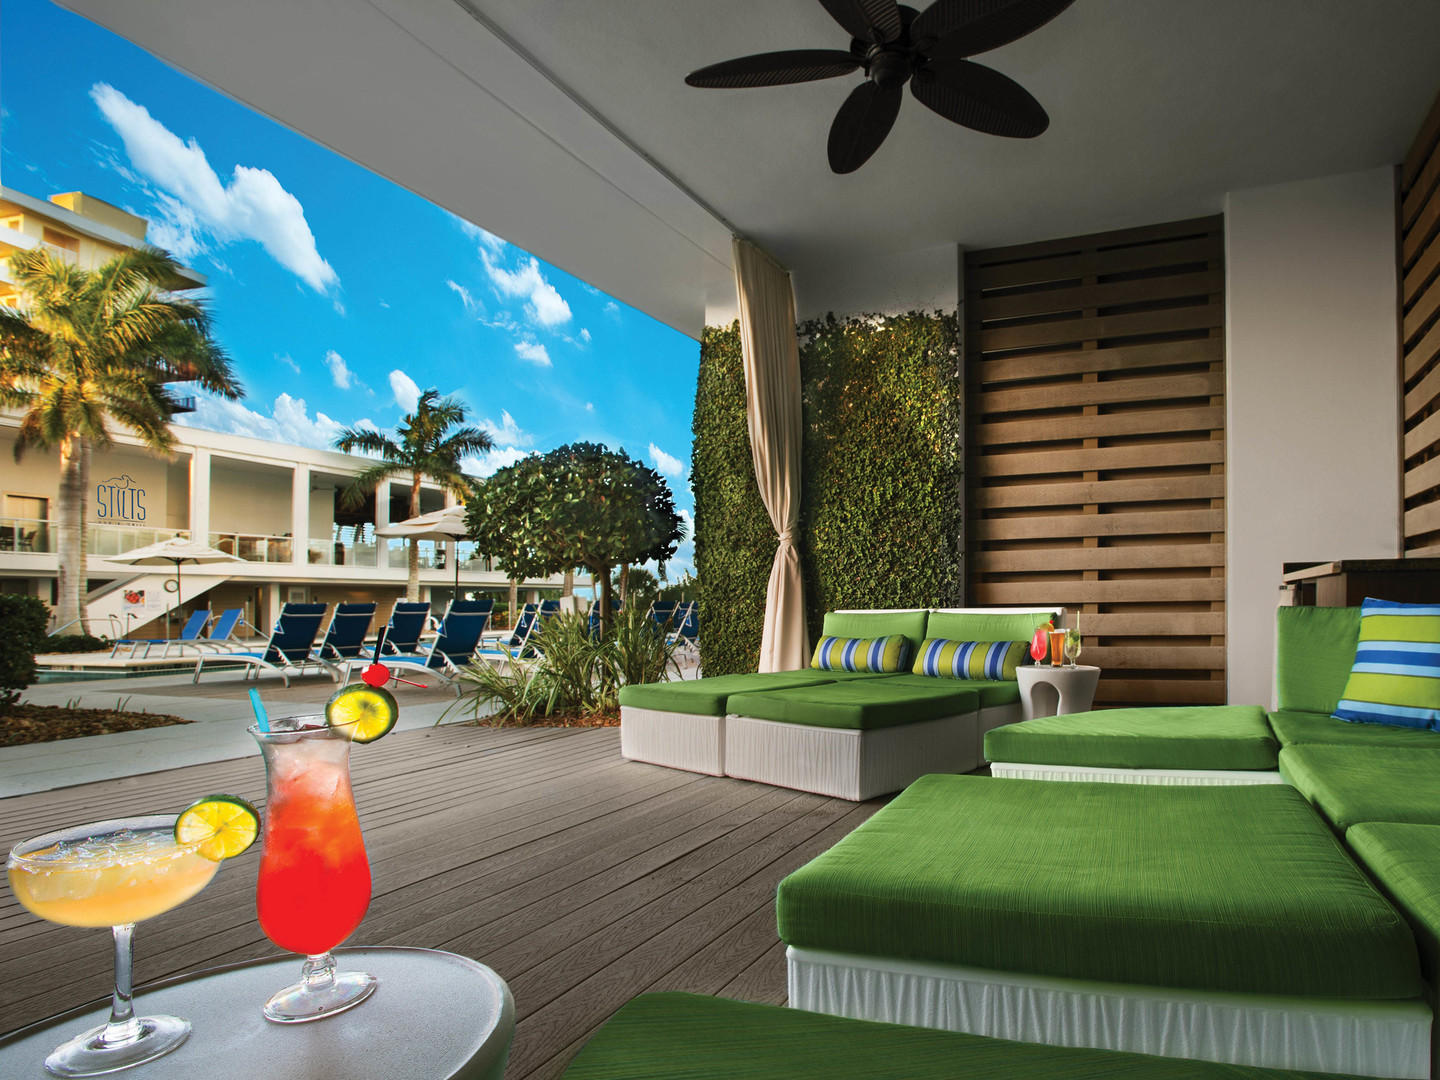 Marriott's Crystal Shores Pool Cabanas. Marriott's Crystal Shores is located in Marco Island, Florida United States.